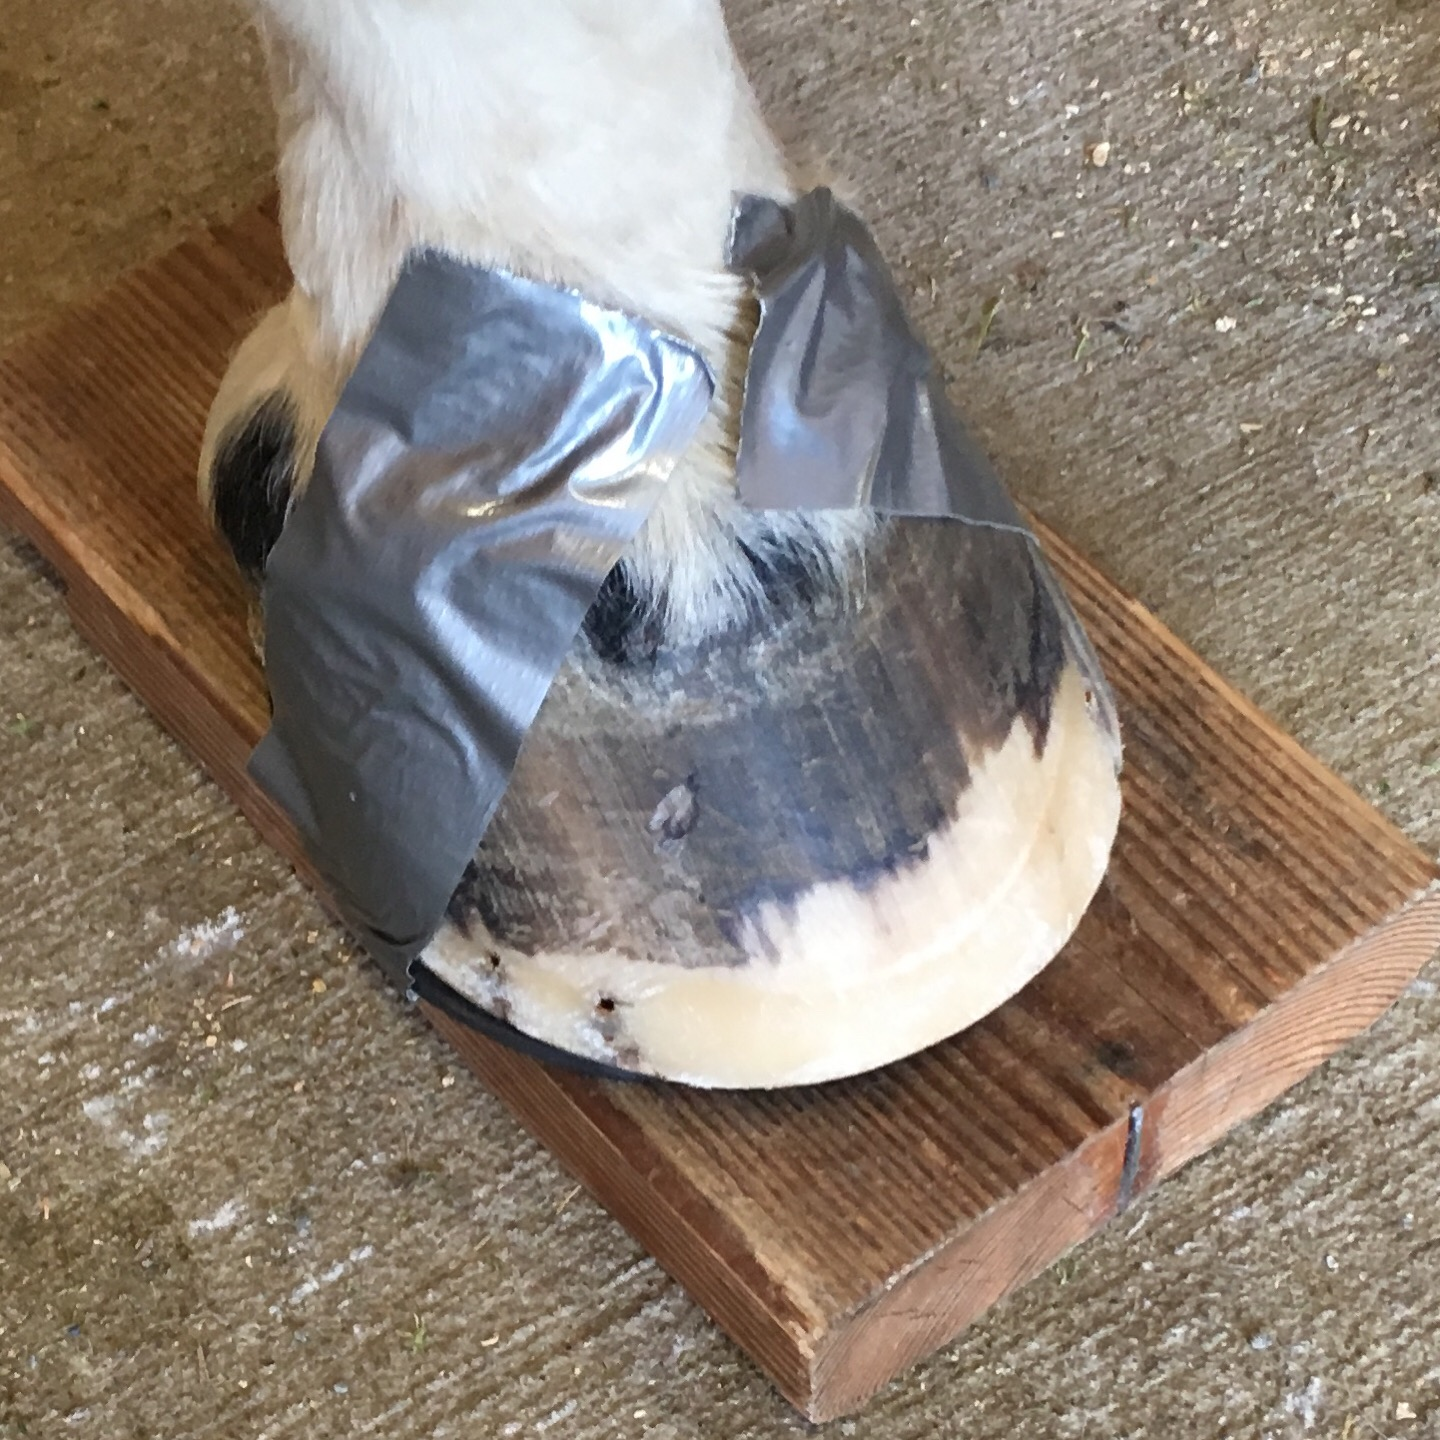 Dallys foot, horse, hoove, foot, shoes and pads, navicular